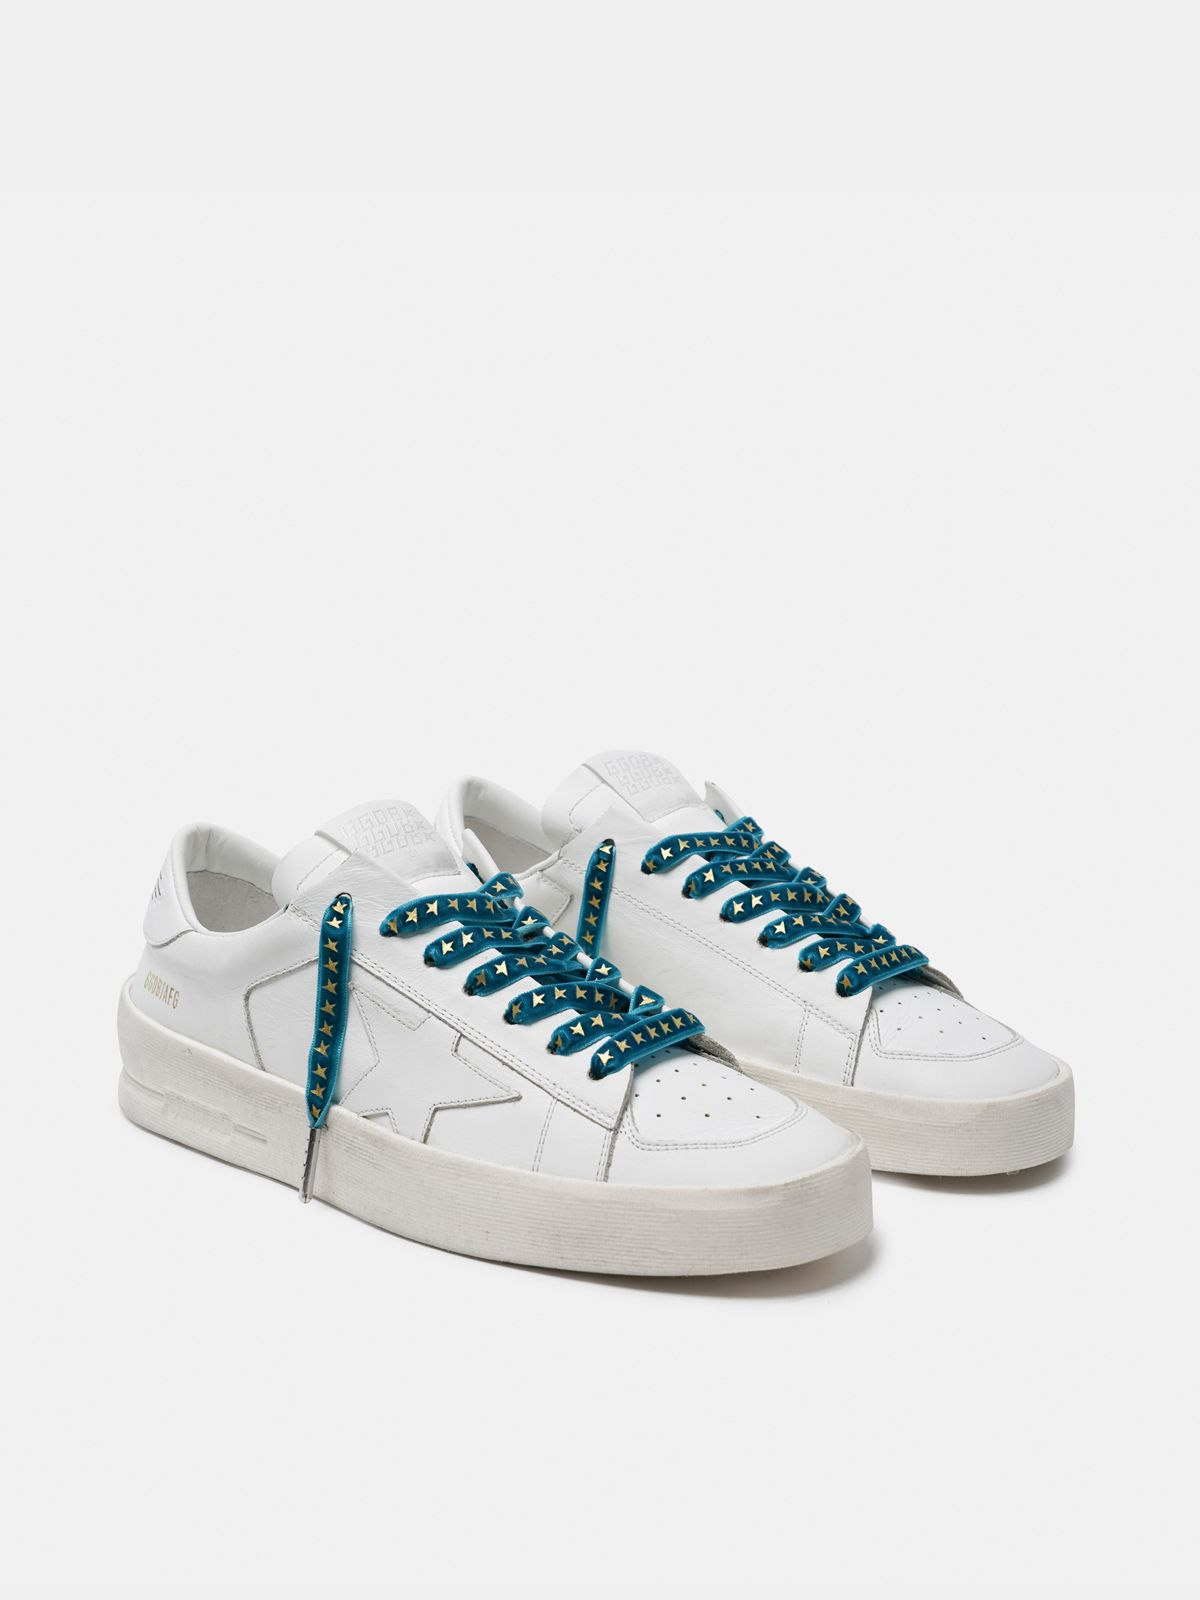 Golden Goose - Women's green velvet laces with gold stars in